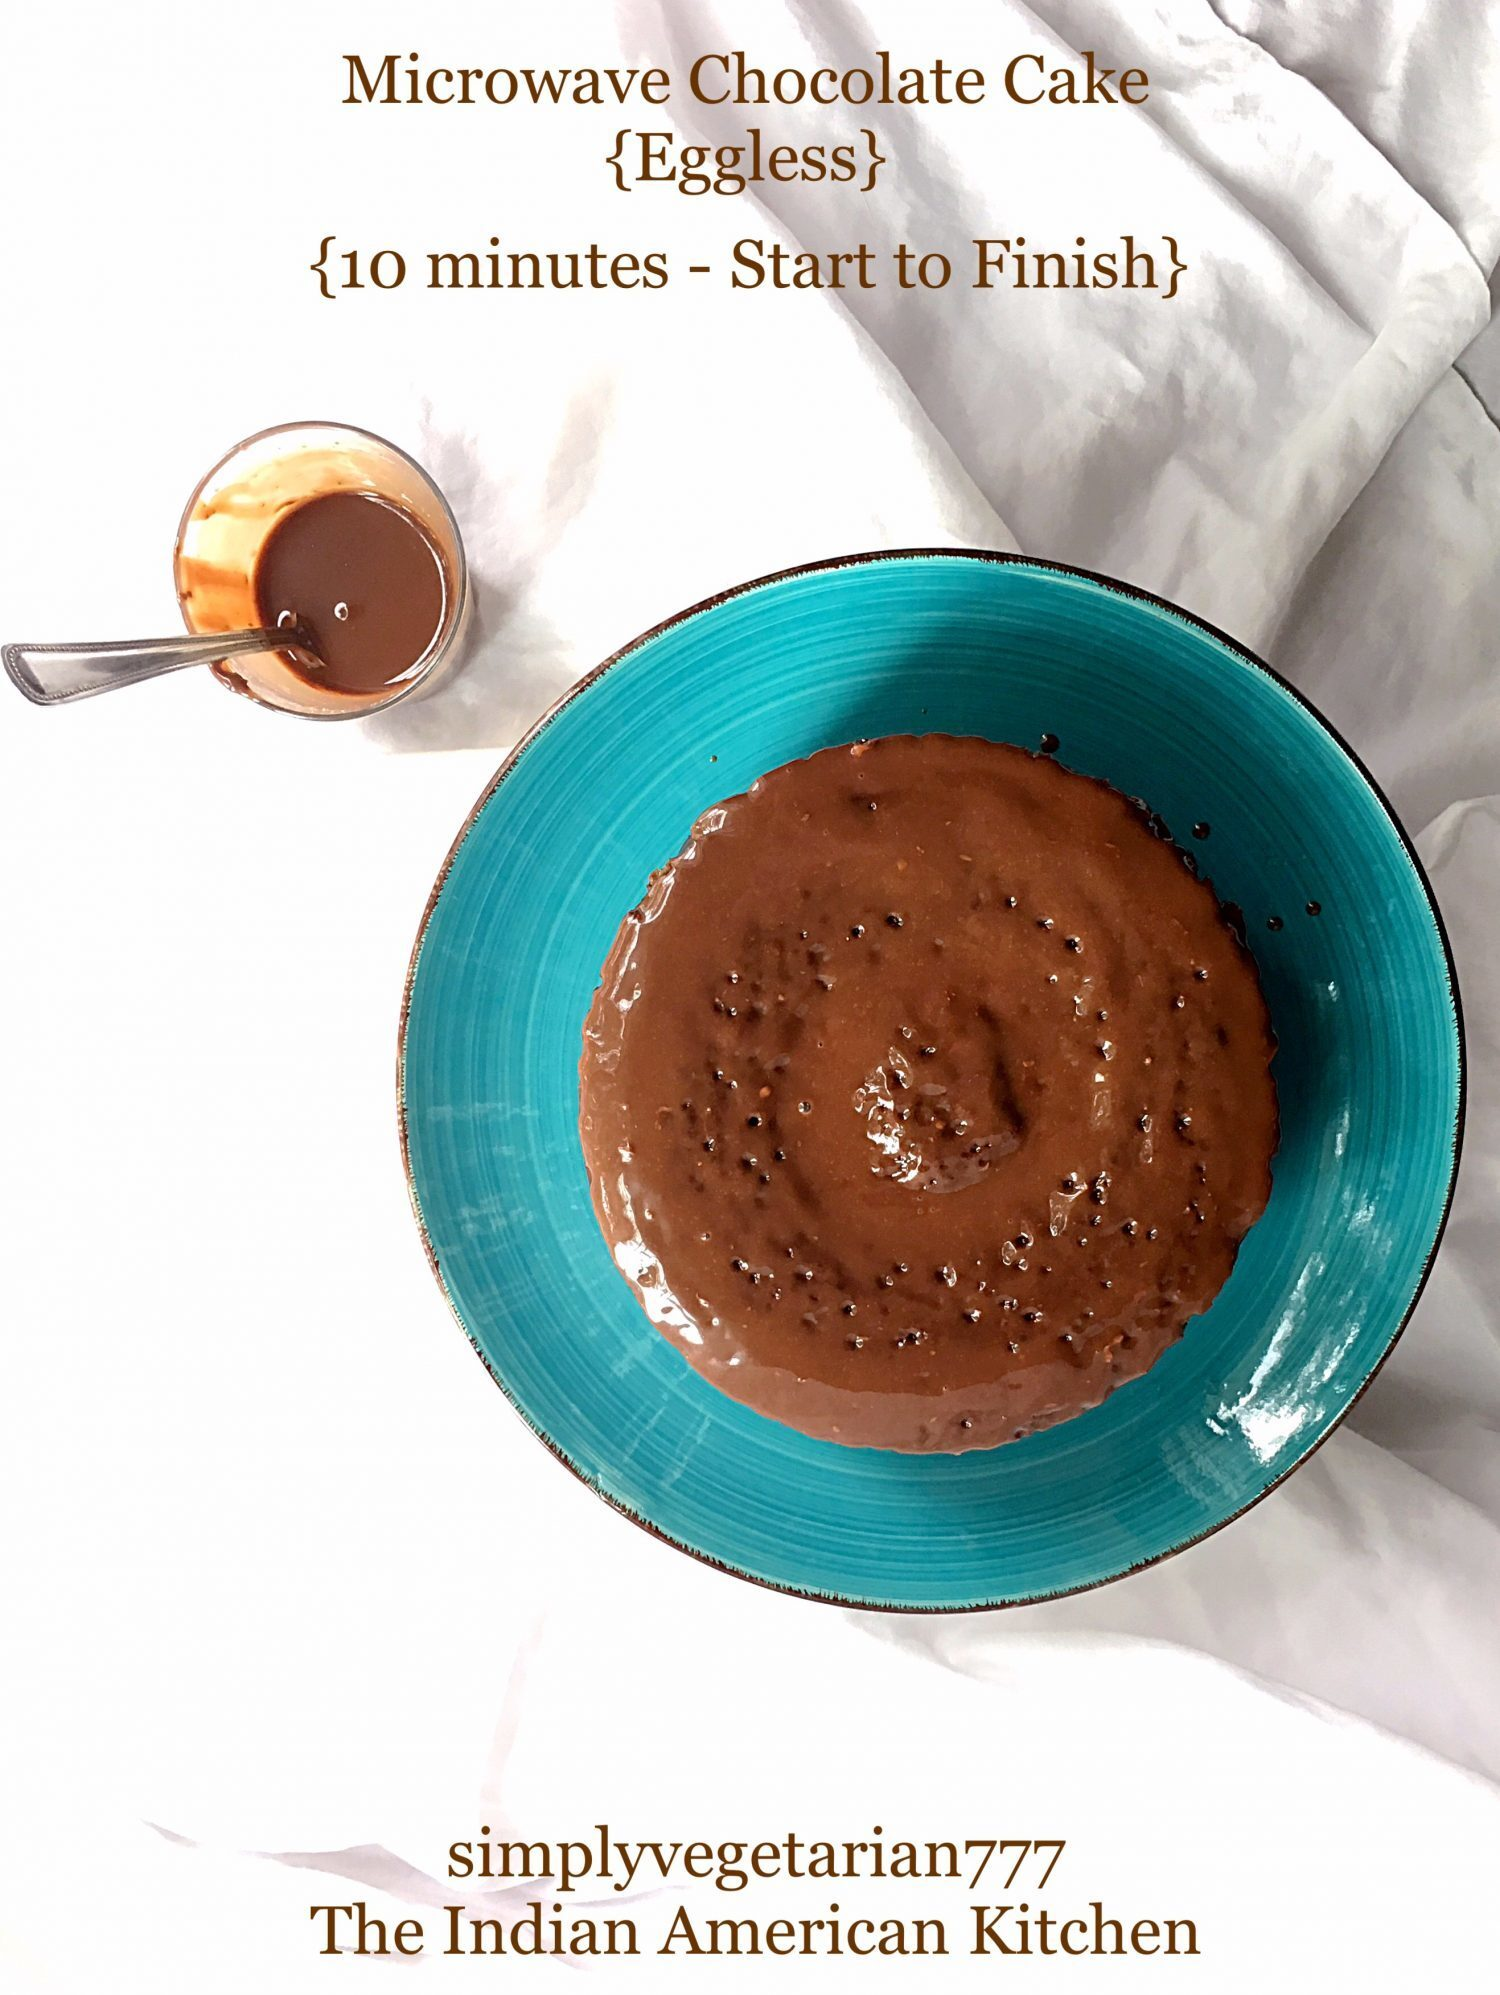 Microwave Chocolate Cake {Eggless}